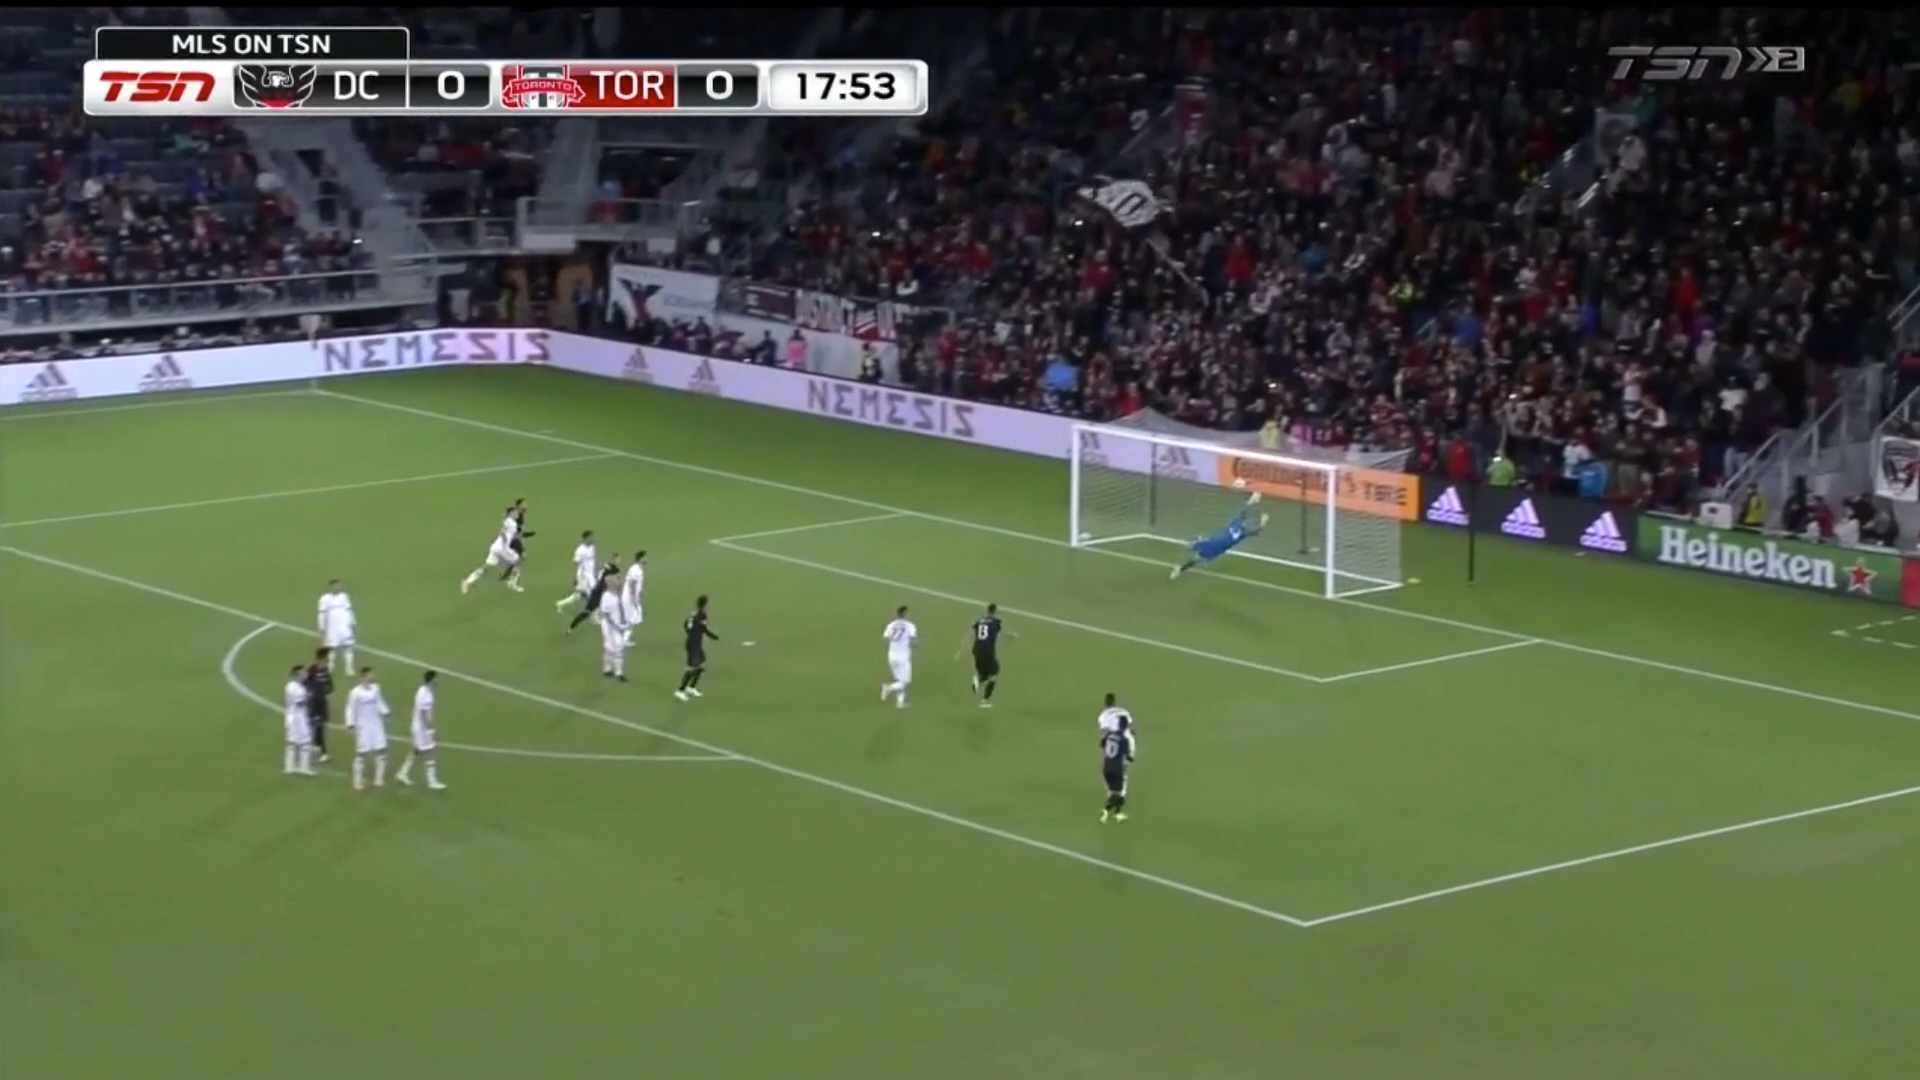 MLS fans in awe as Wayne Rooney scores insane freekick goal